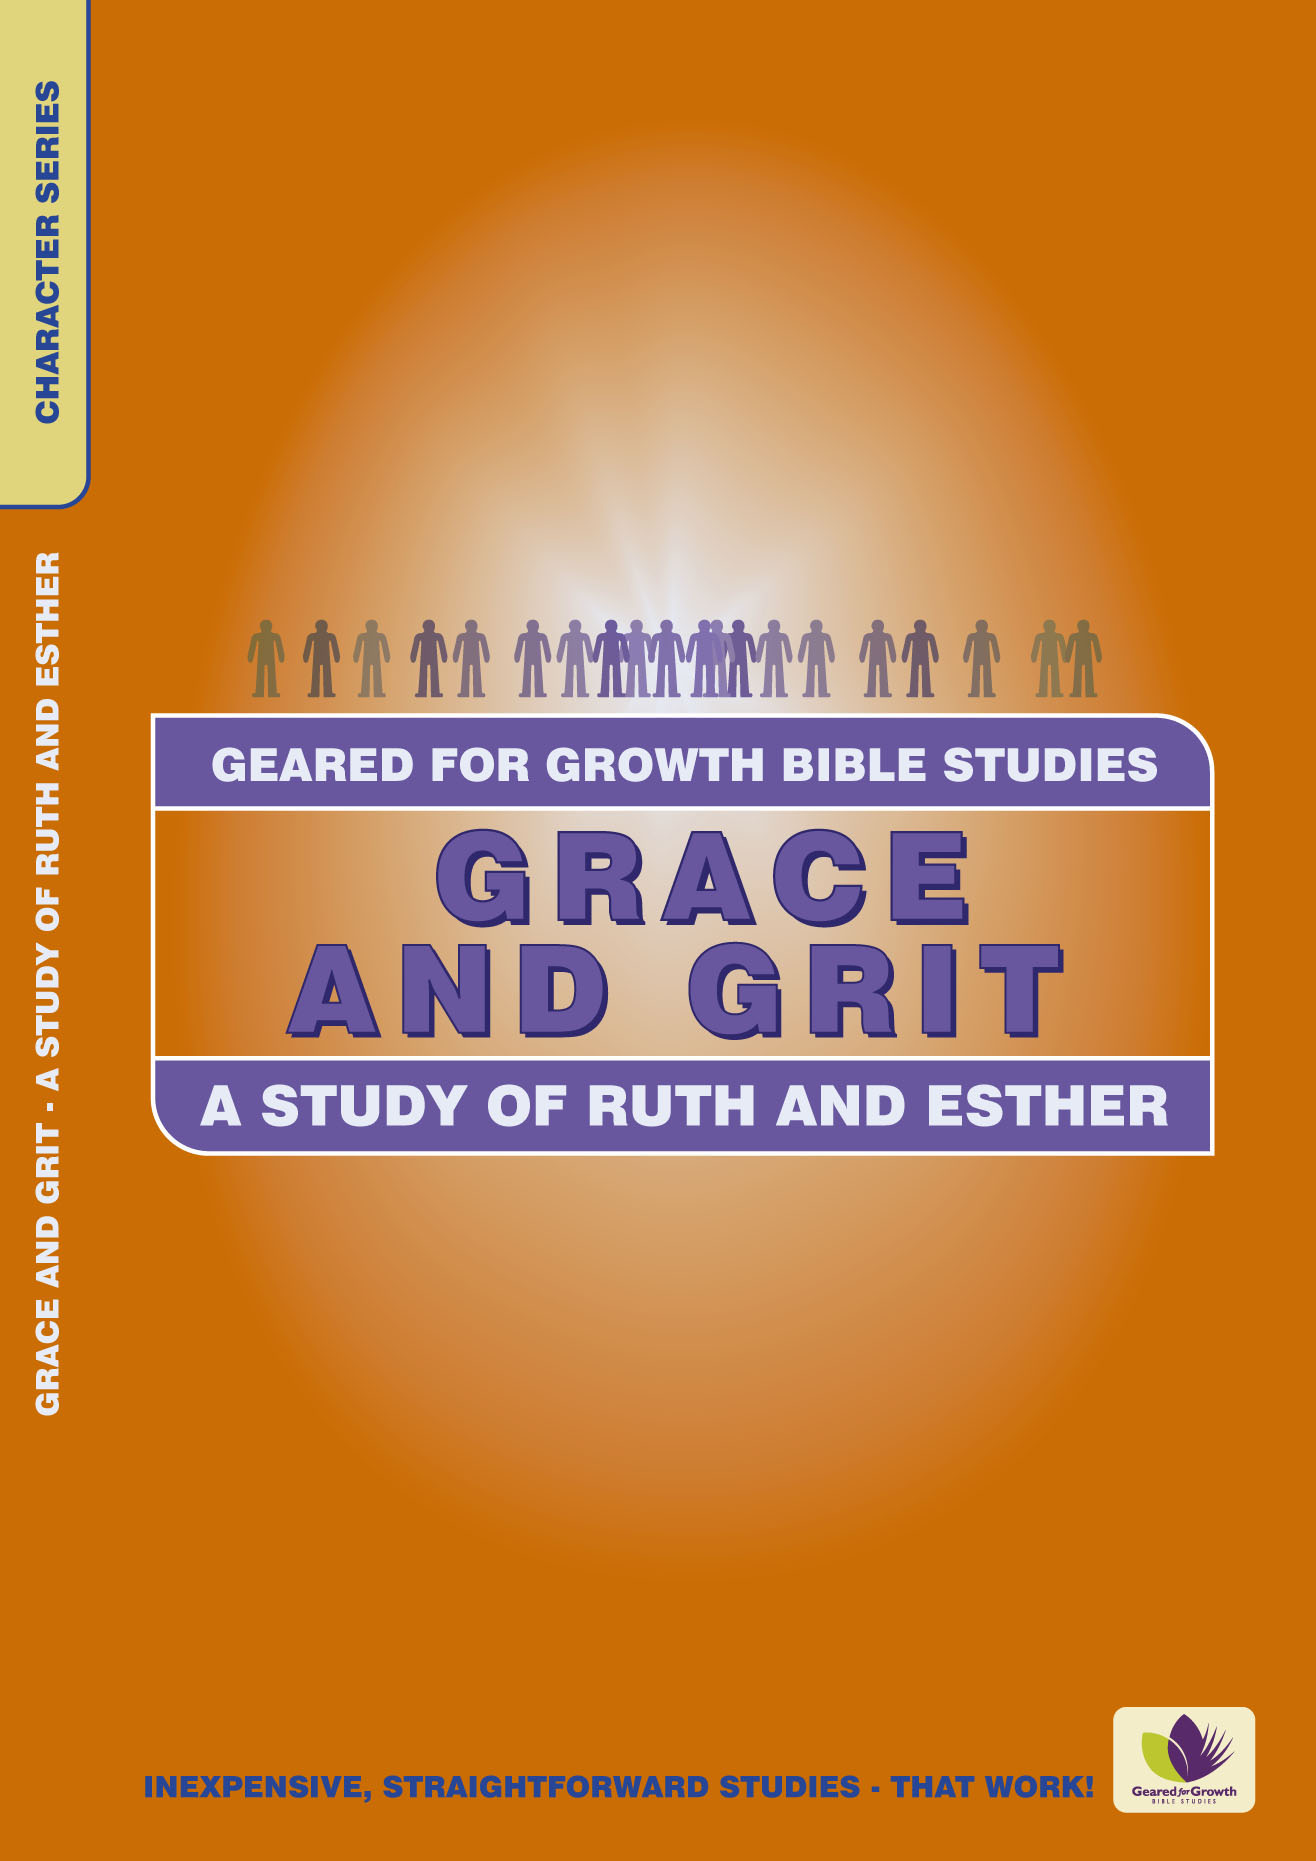 Grace and Grit: A Study of Ruth and Esther by Nina Drew